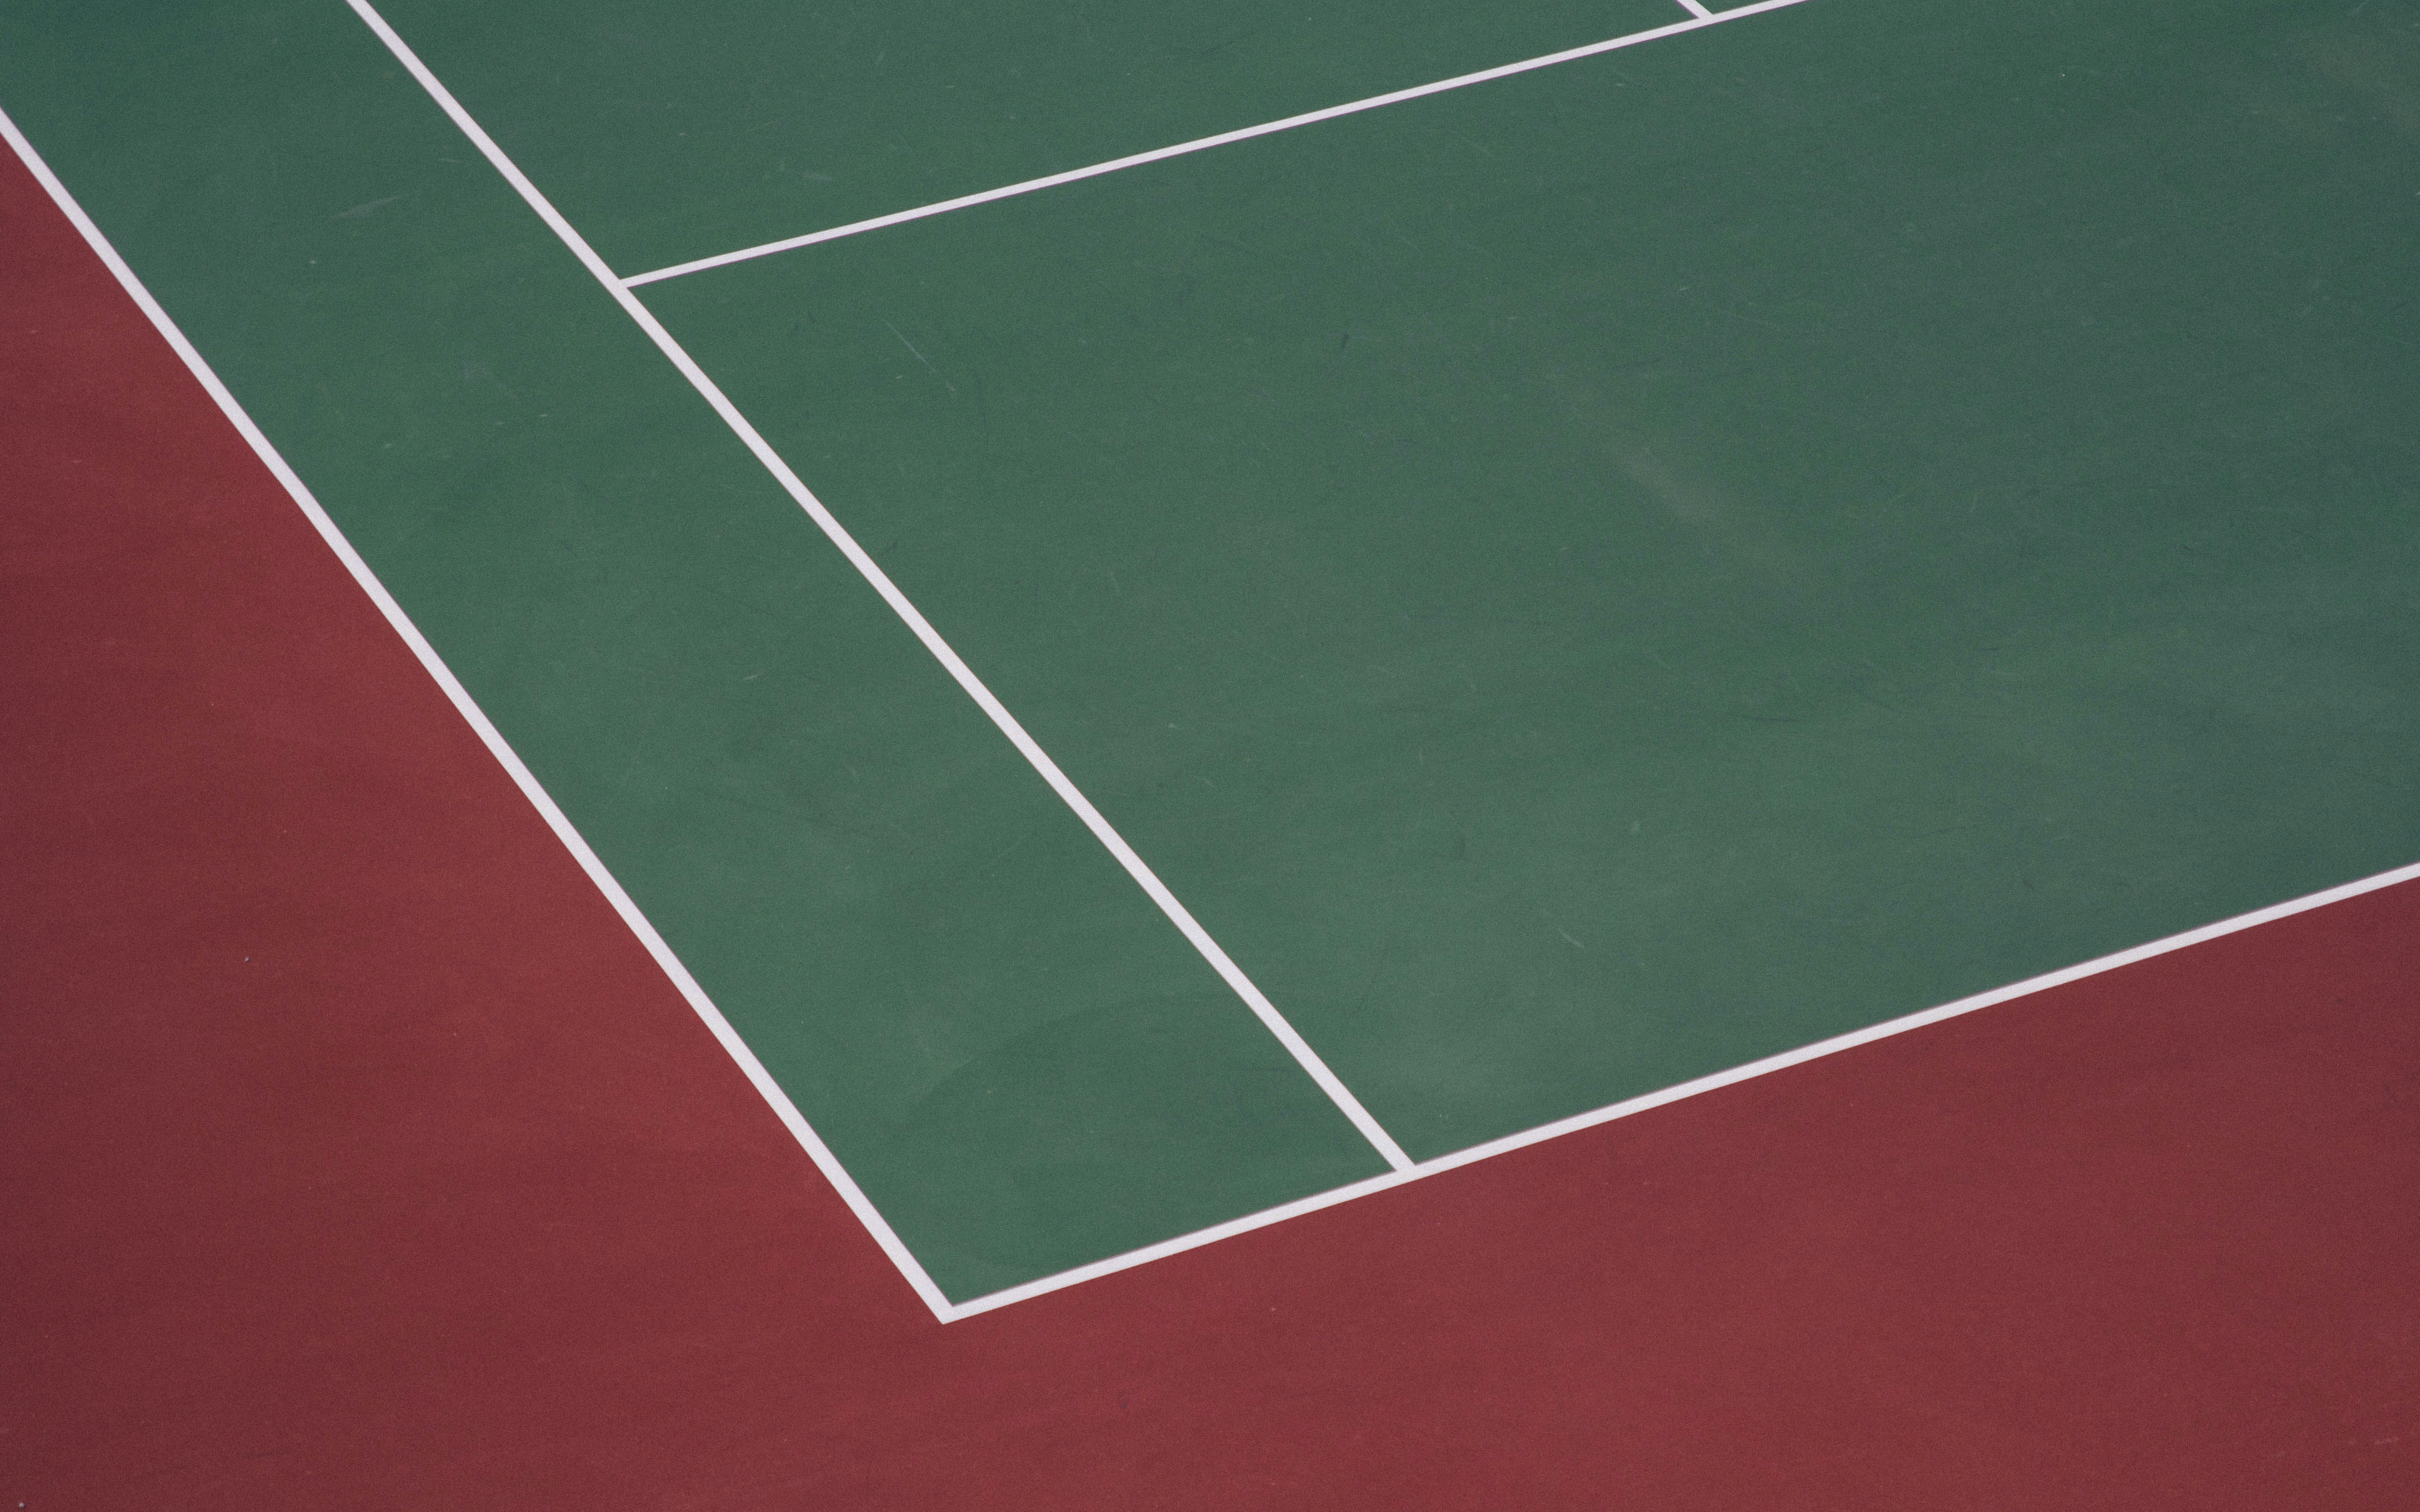 A red and green tennis court at Gaithersburg High School